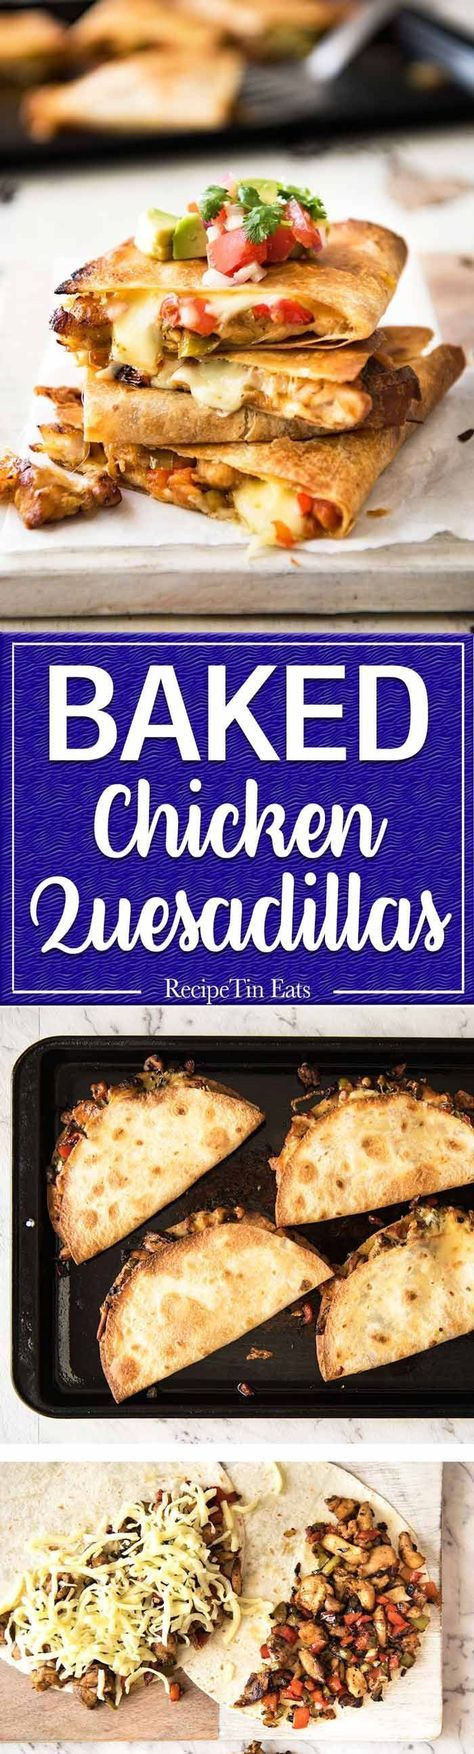 Crispy Oven Baked Chicken Quesadillas - This is how to make multiple Quesadillas at the same time! Crispy on the outside, stuffed with Mexican seasoned chicken and capsicum / bell peppers (and cheese of course!) http://www.recipetineats.com